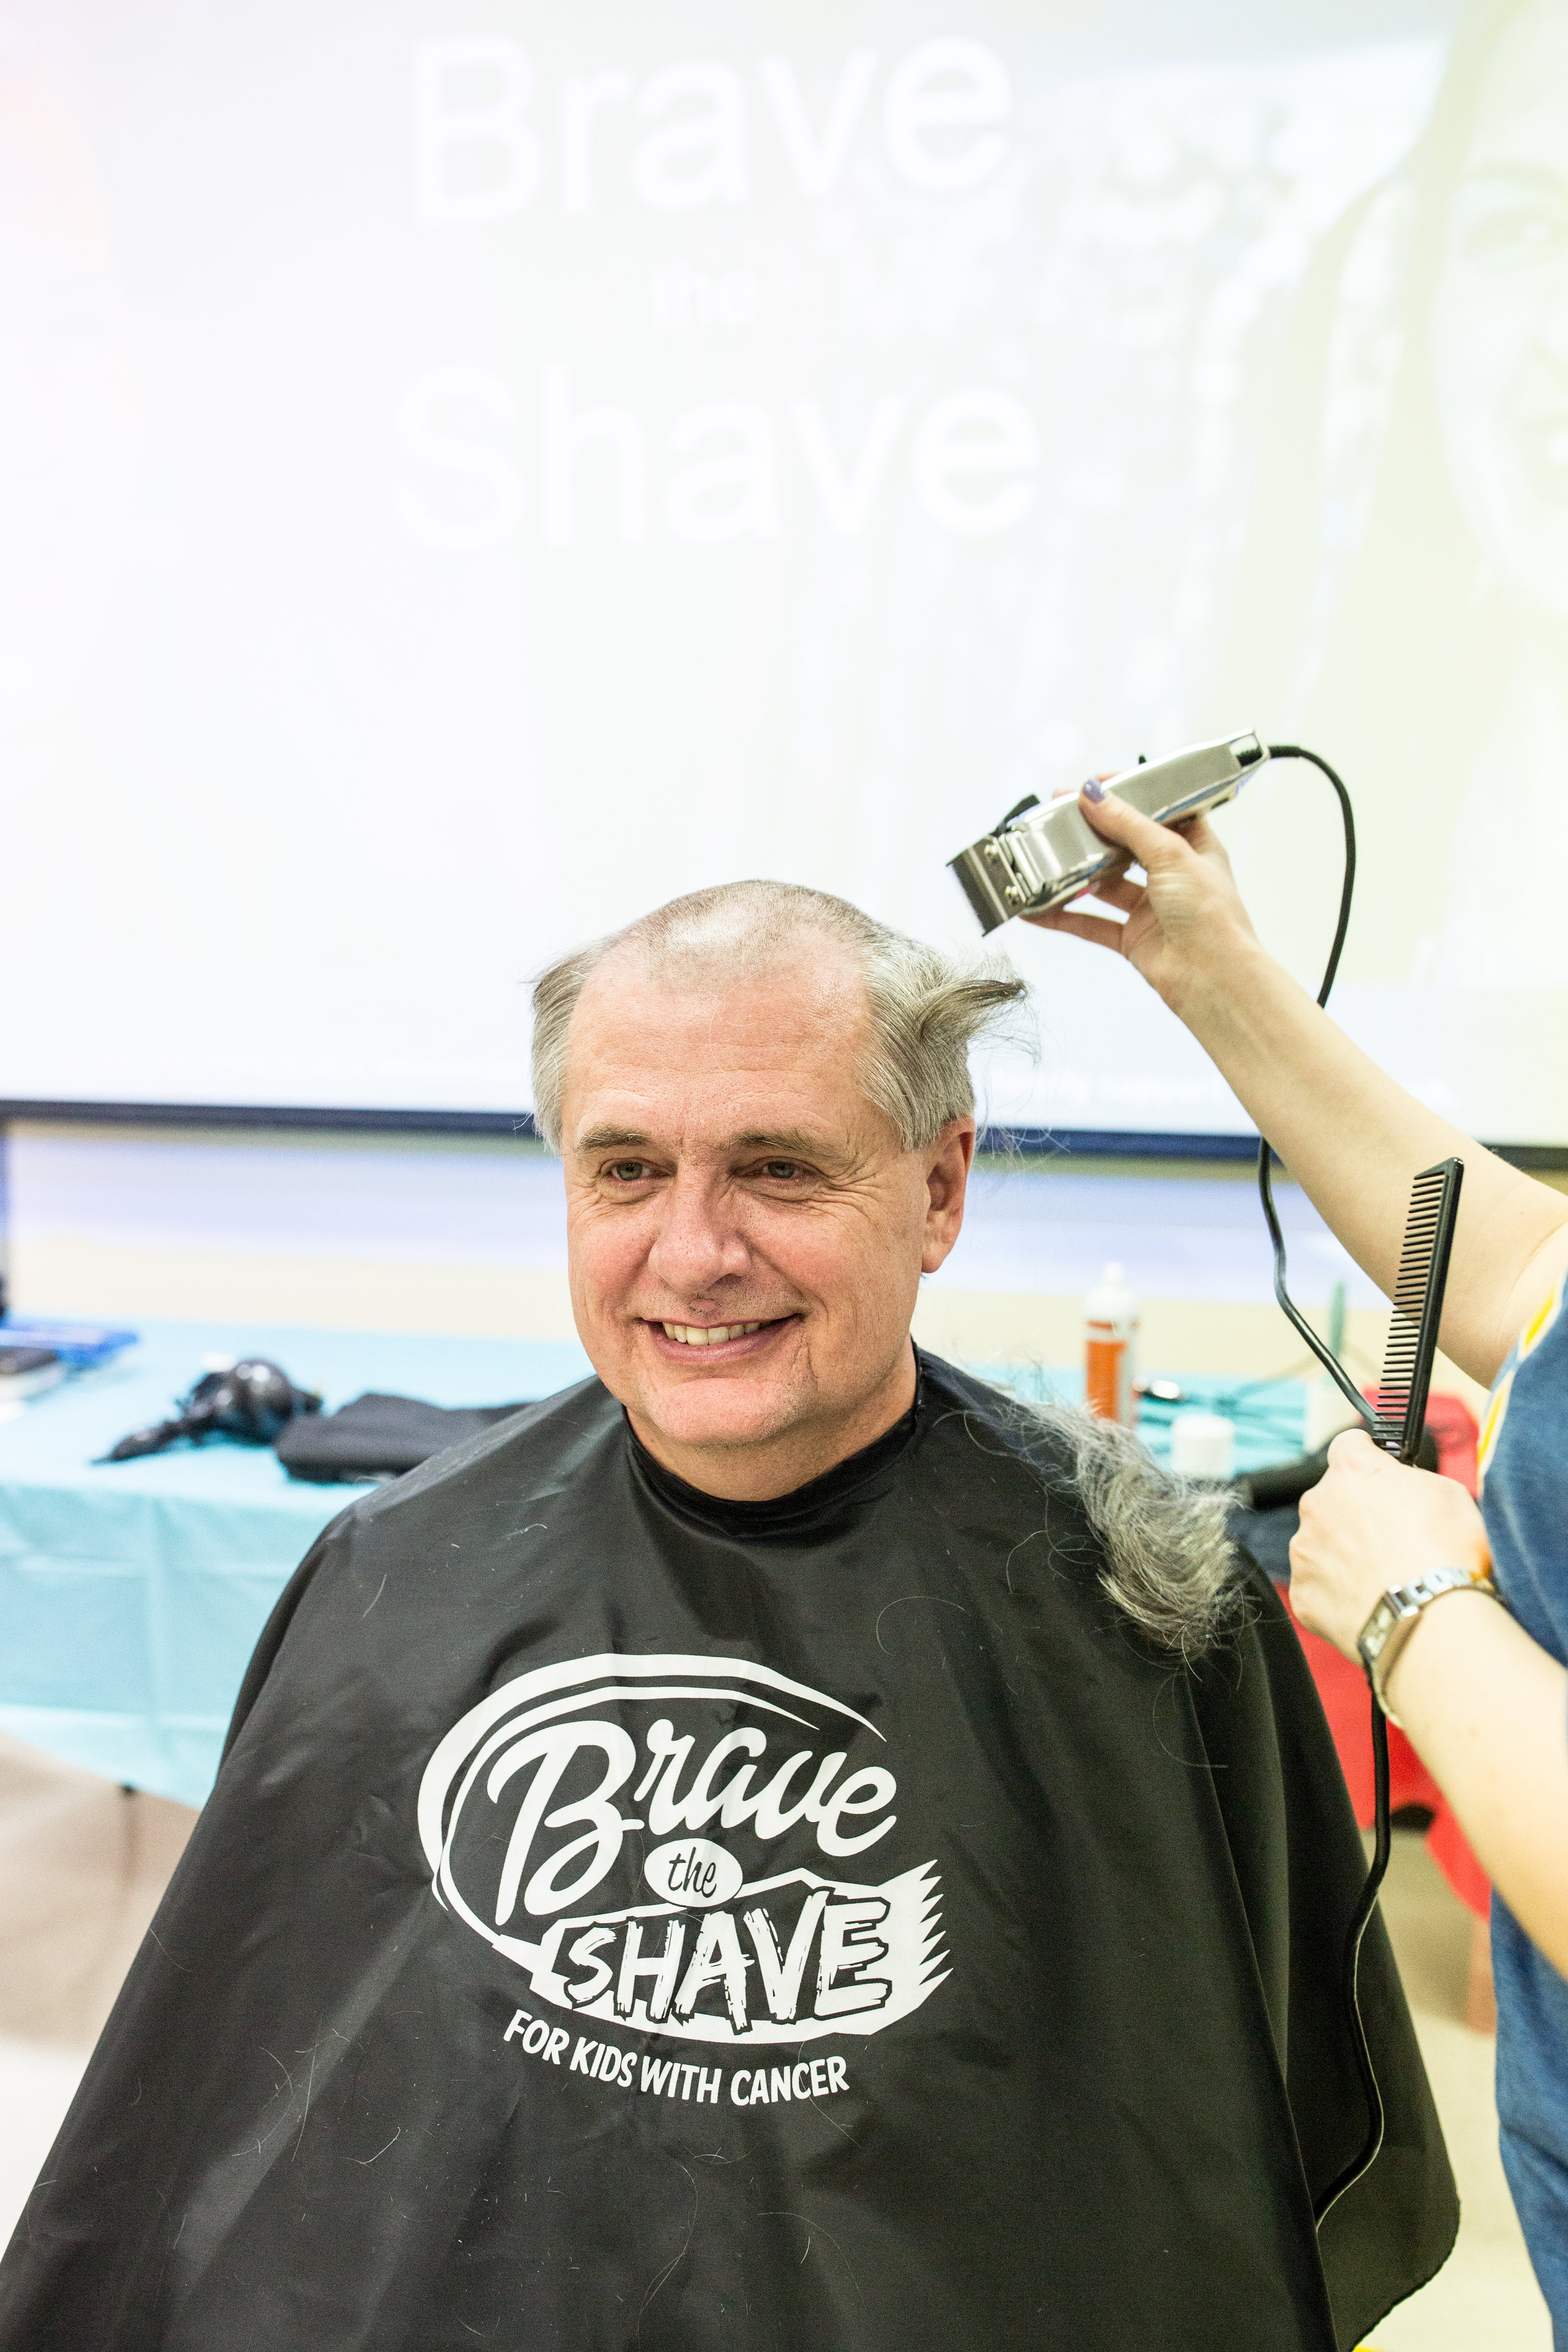 20180410 Brave The Shave28.JPG